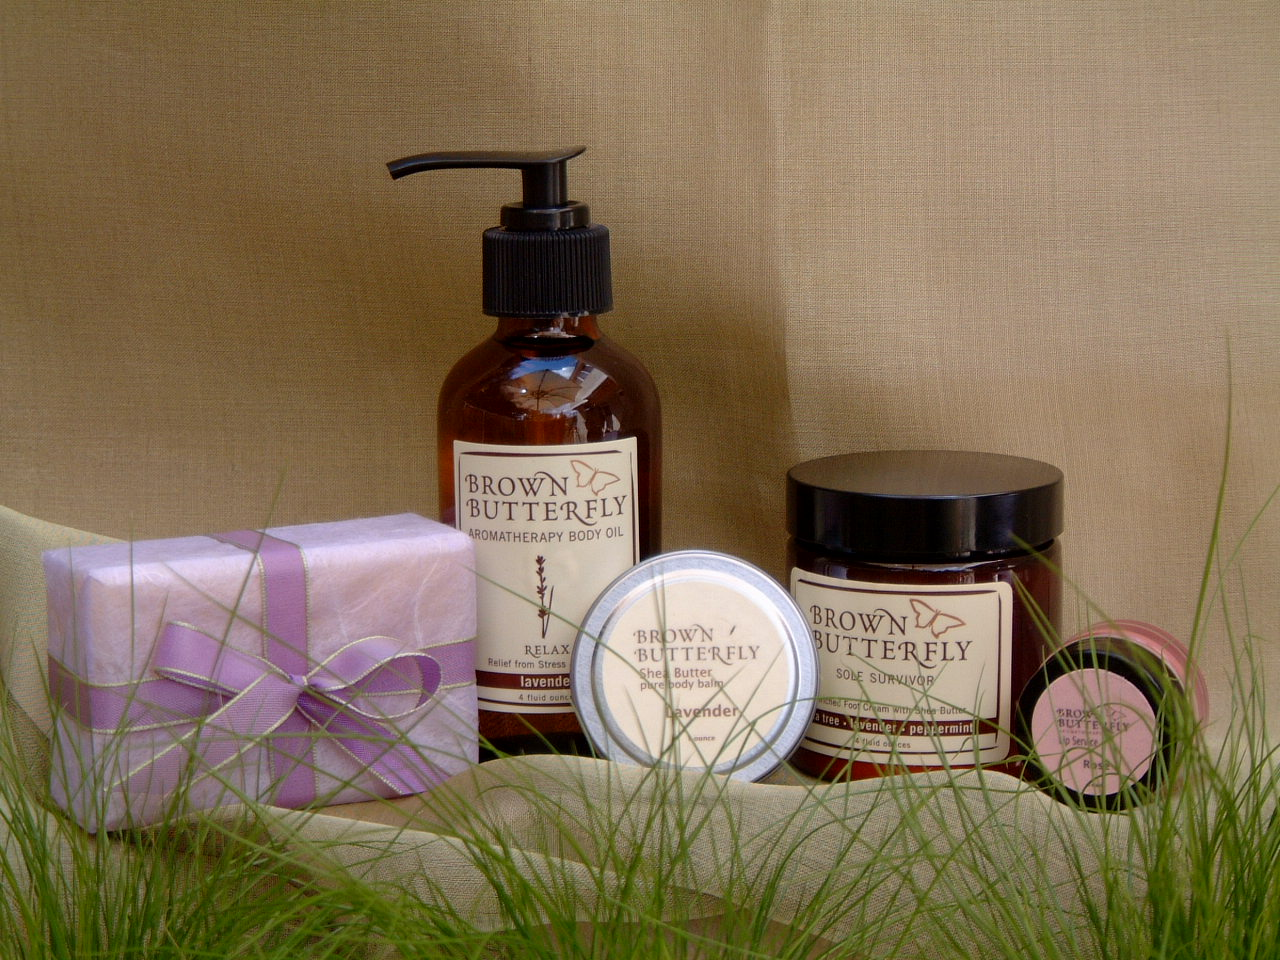 Spa Day Gift Box from Brown Butterfly. Photo courtesy Brown Butterfly.